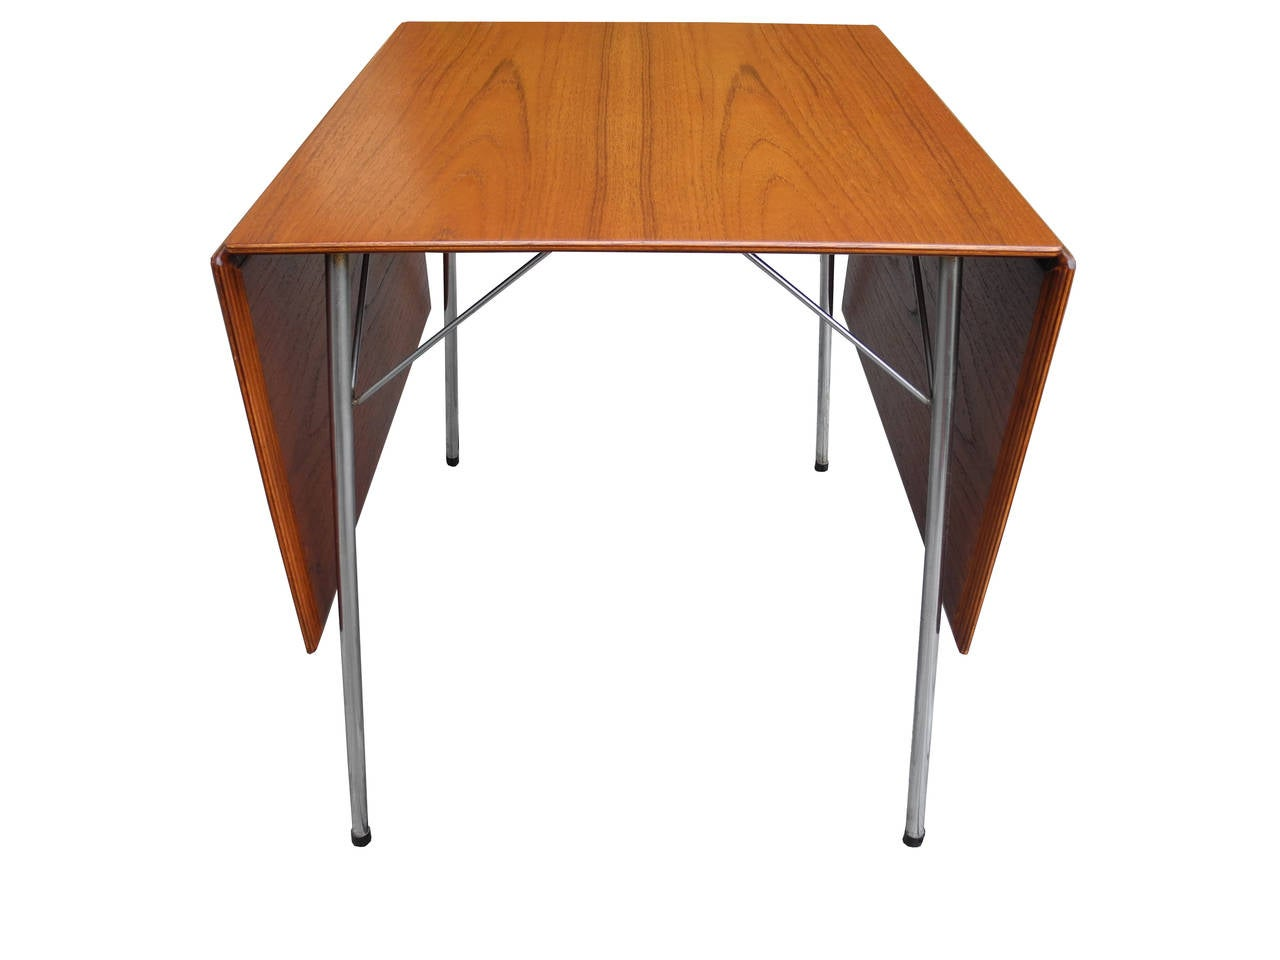 Terrific folding dining room tables pictures decors dievoon for Folding dining room table